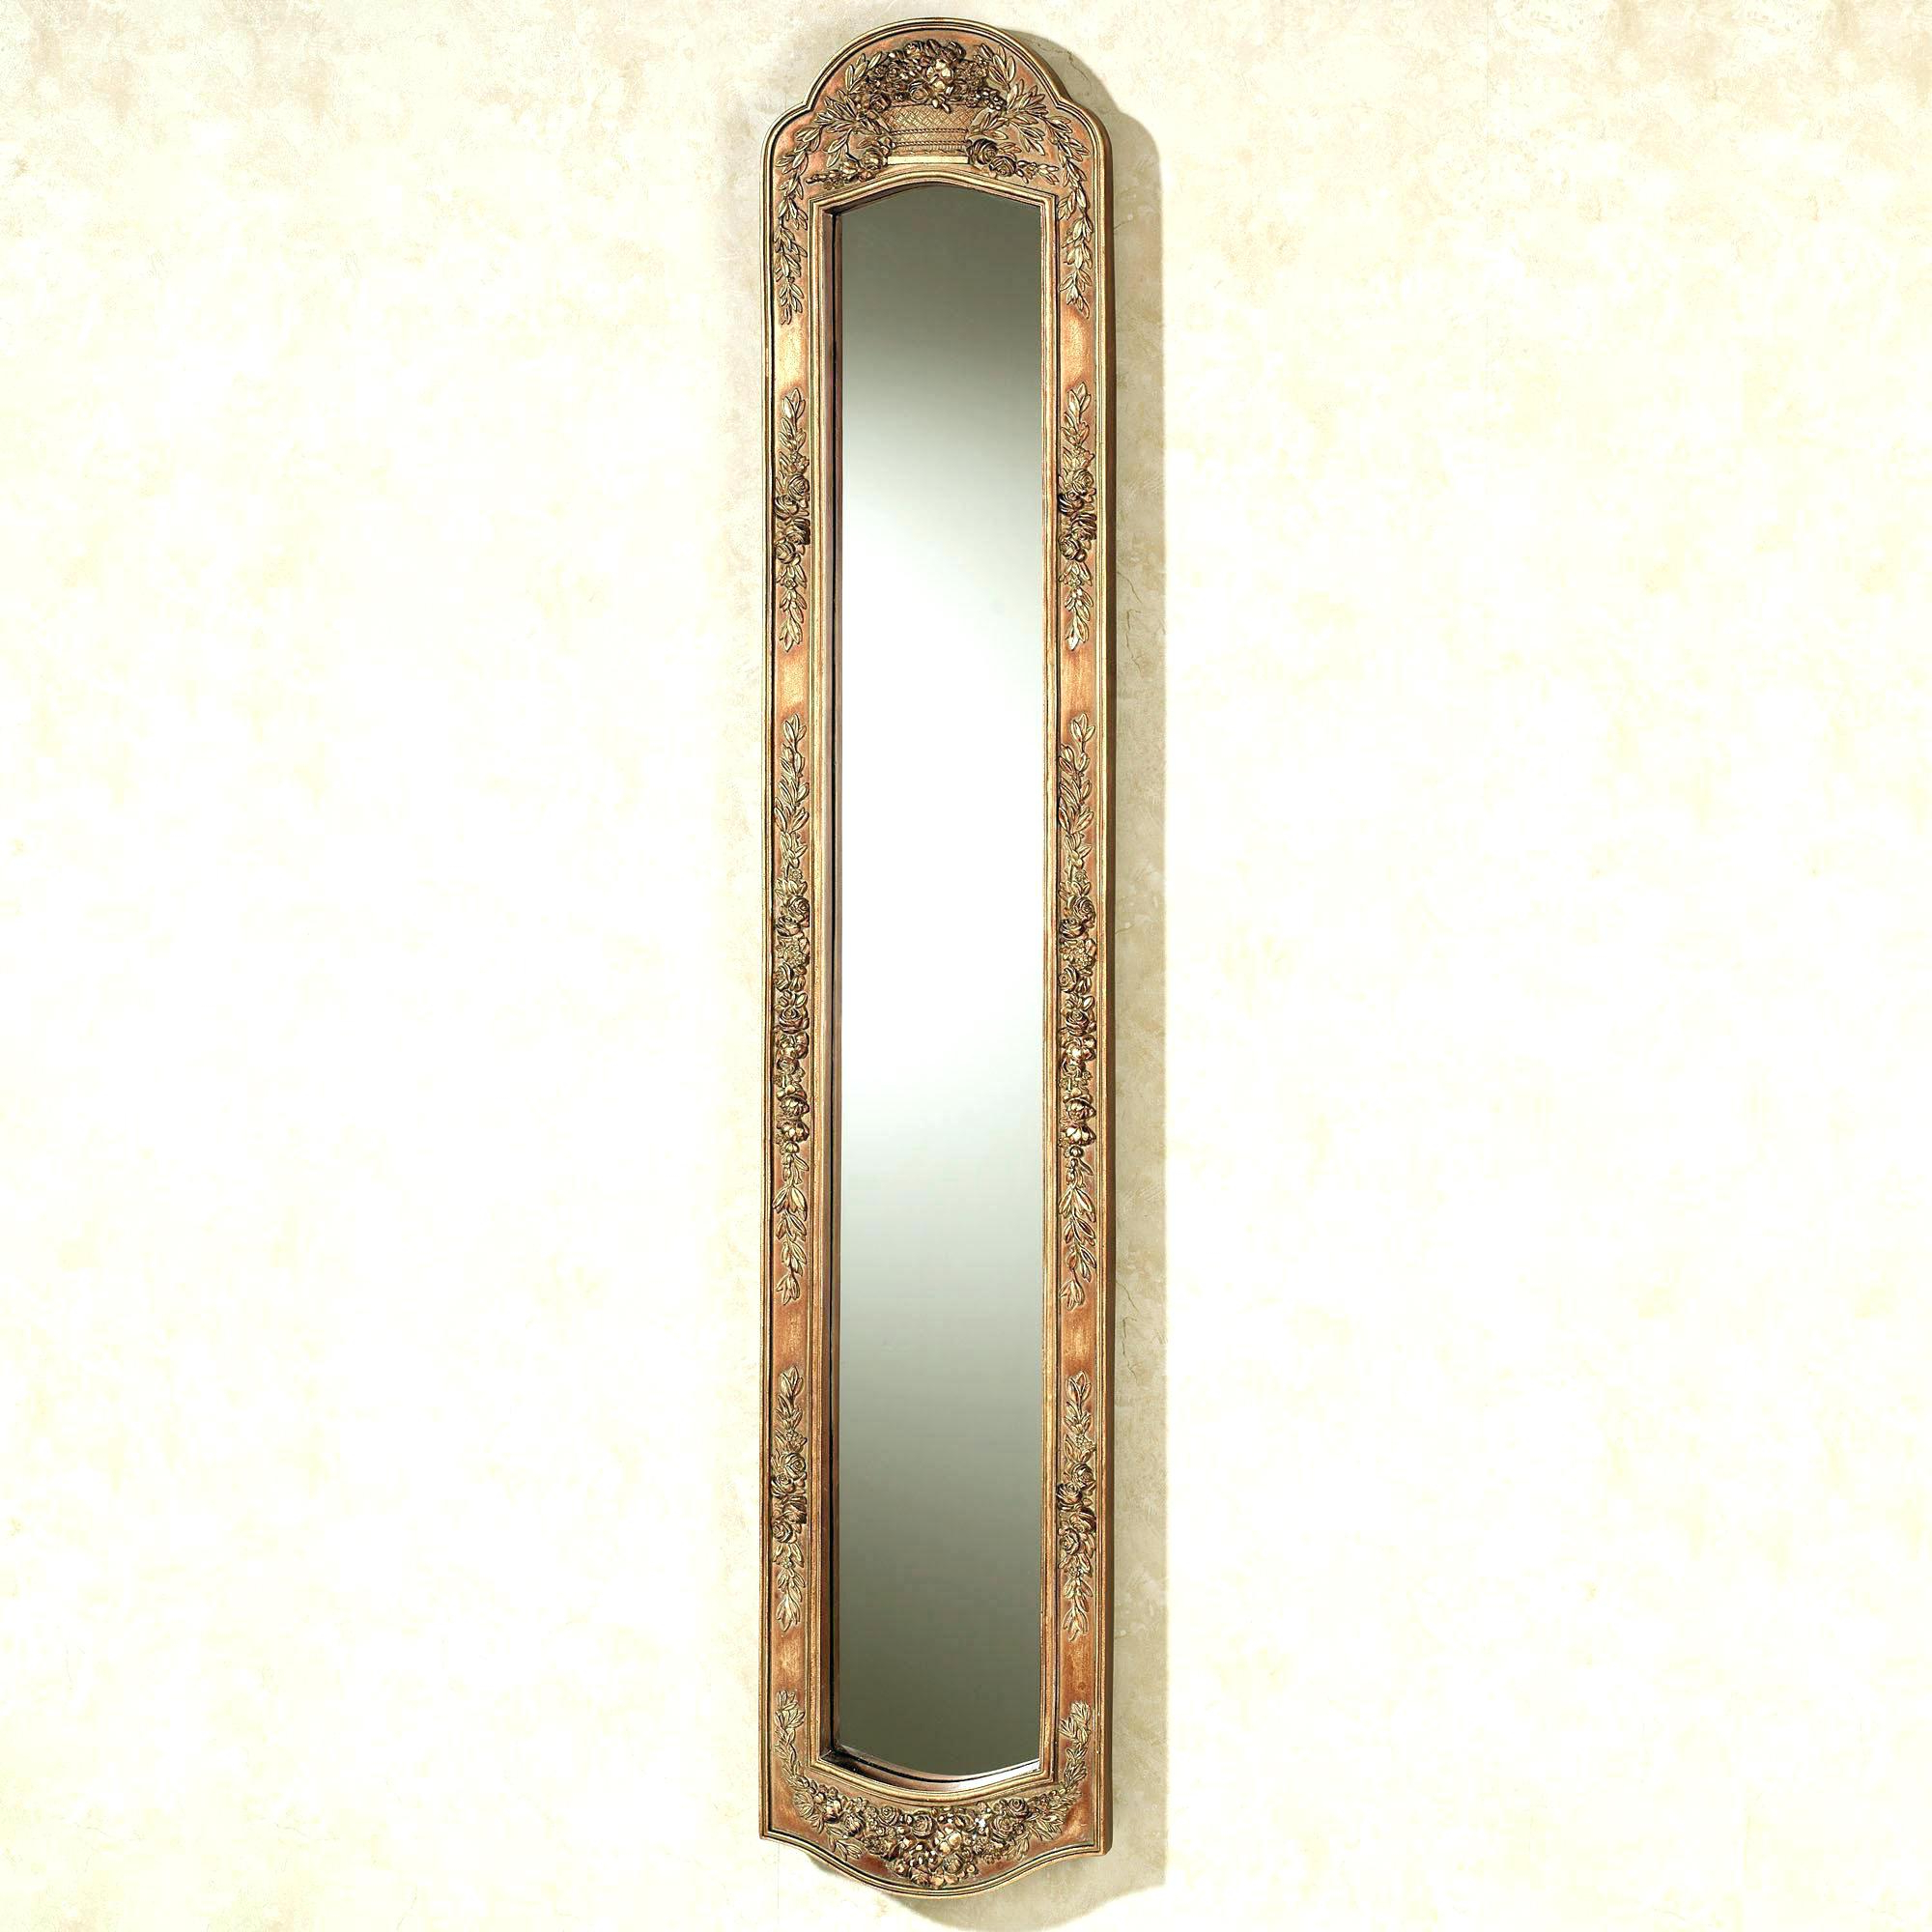 Wall Mirrors Italian Gilt Long Narrow Hanging Mirror Labarge Oval Intended For 2020 Narrow Wall Mirrors (View 4 of 20)